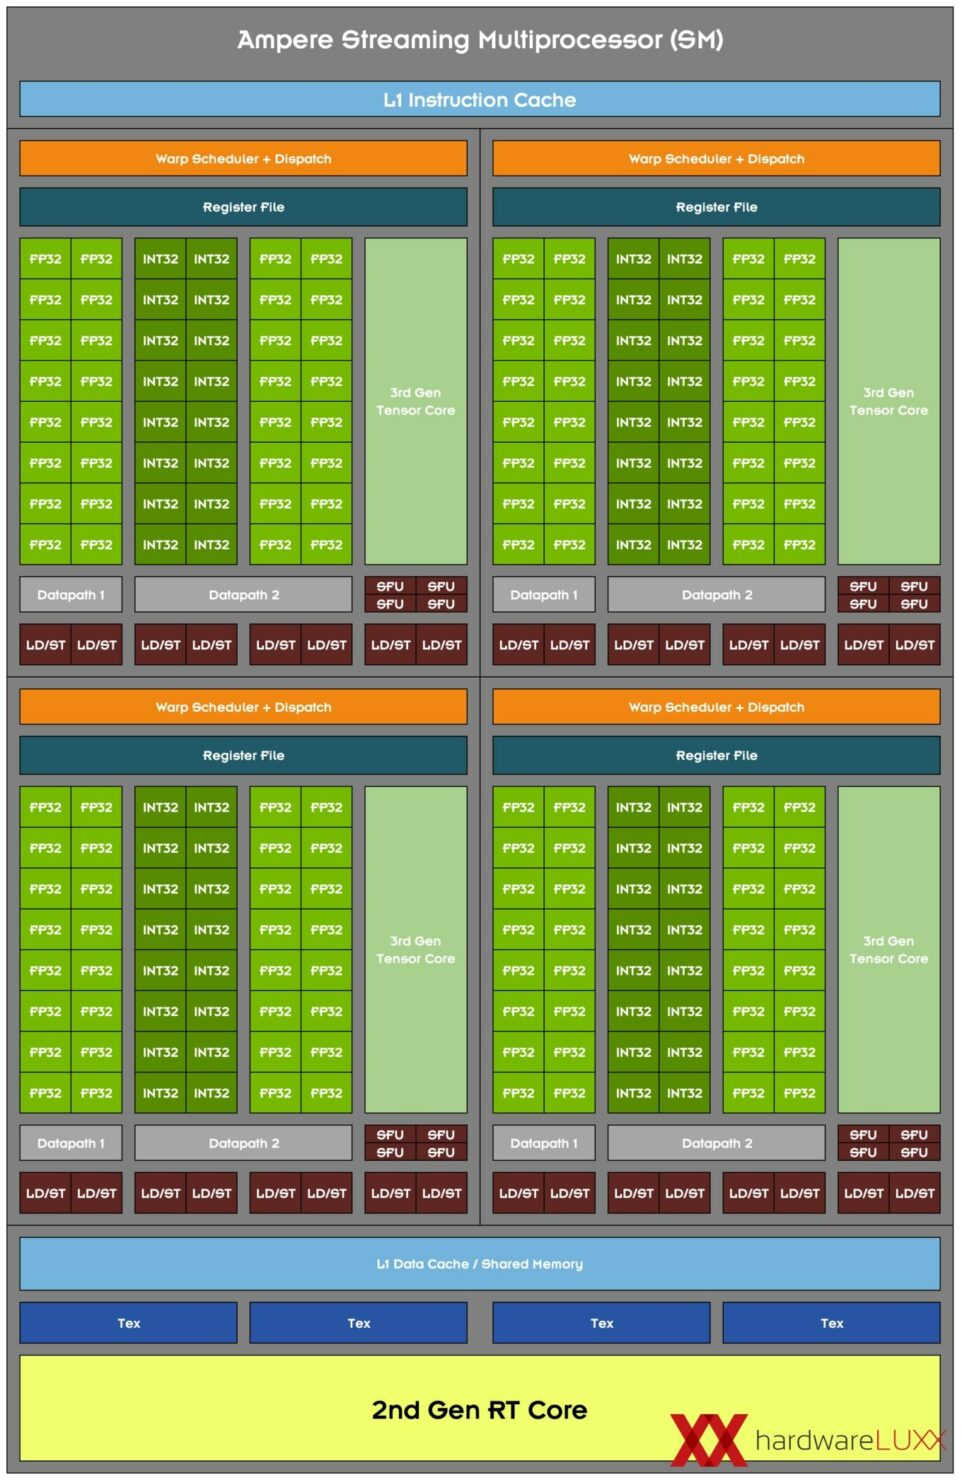 nvidia-geforce-rtx-30-series_ampere-sm-architecture_1